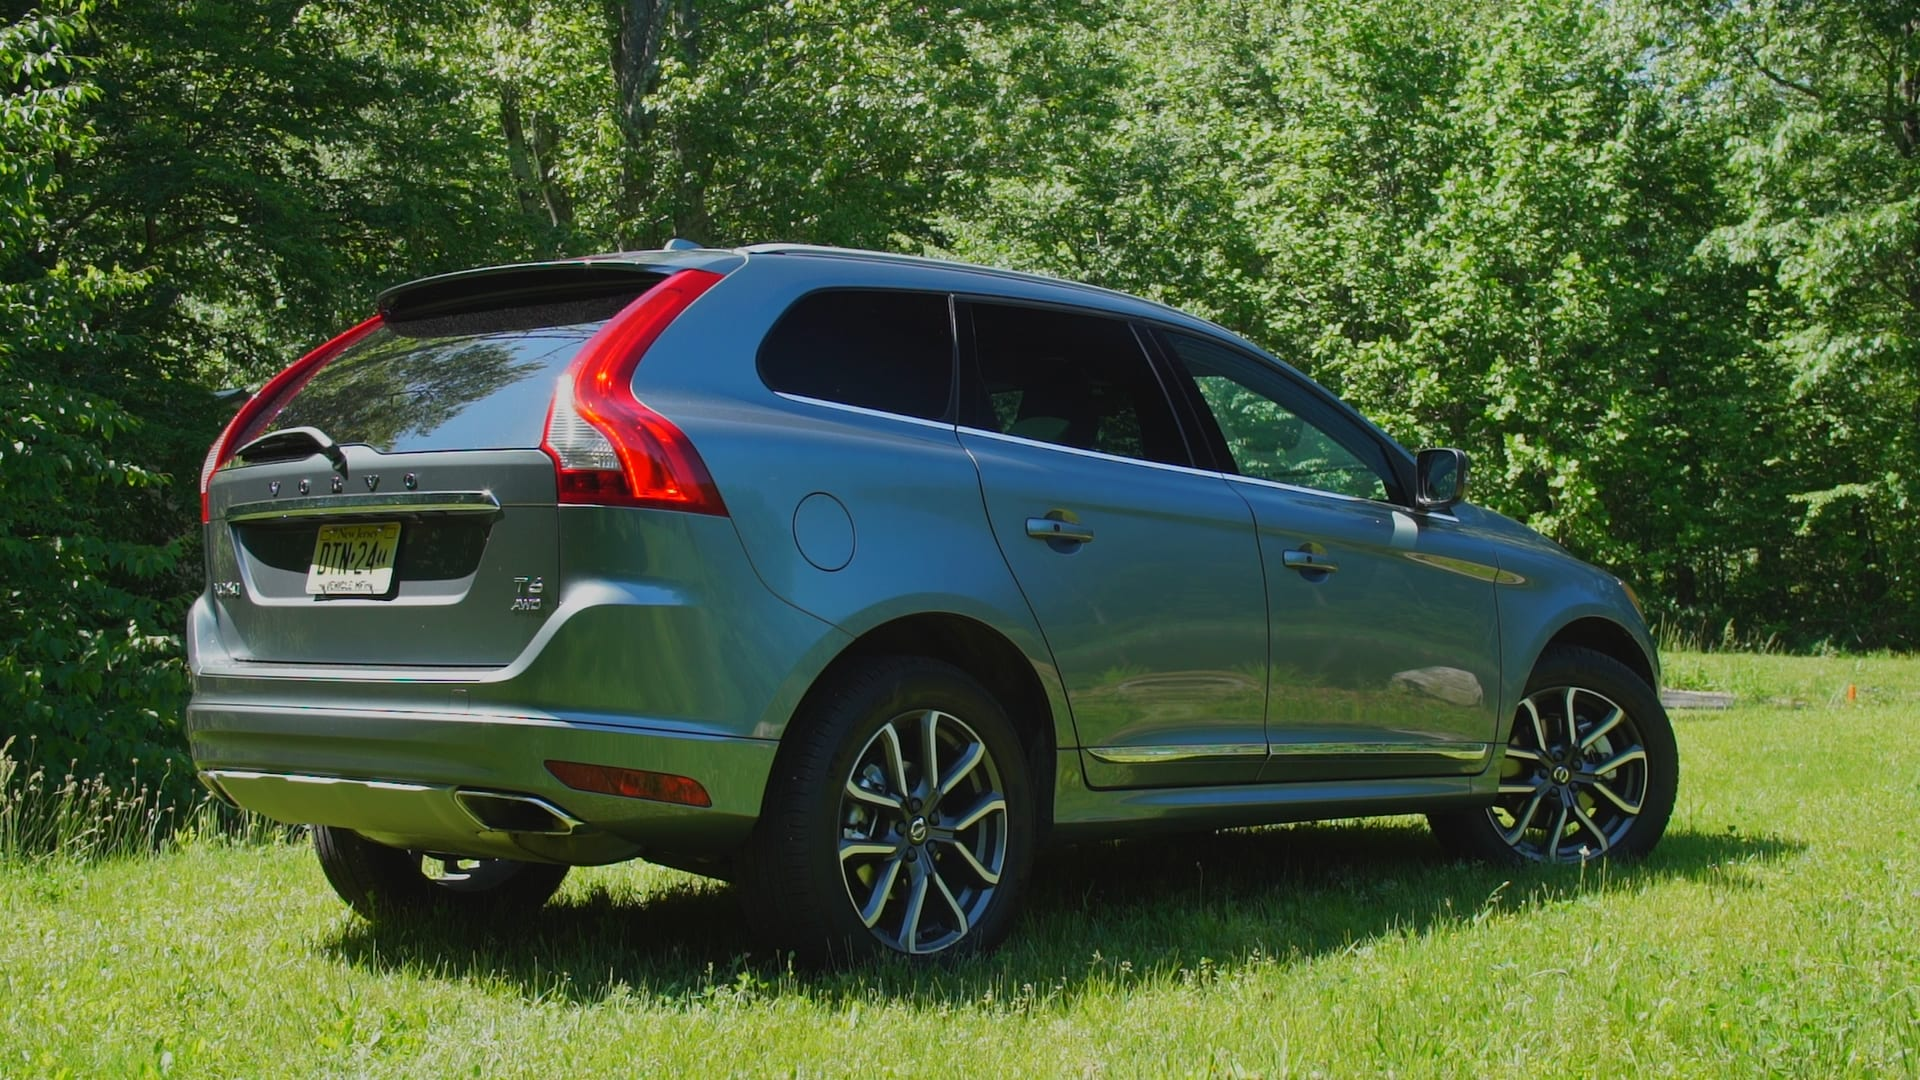 2017 Volvo XC60 SUV Bides its Time - Consumer Reports